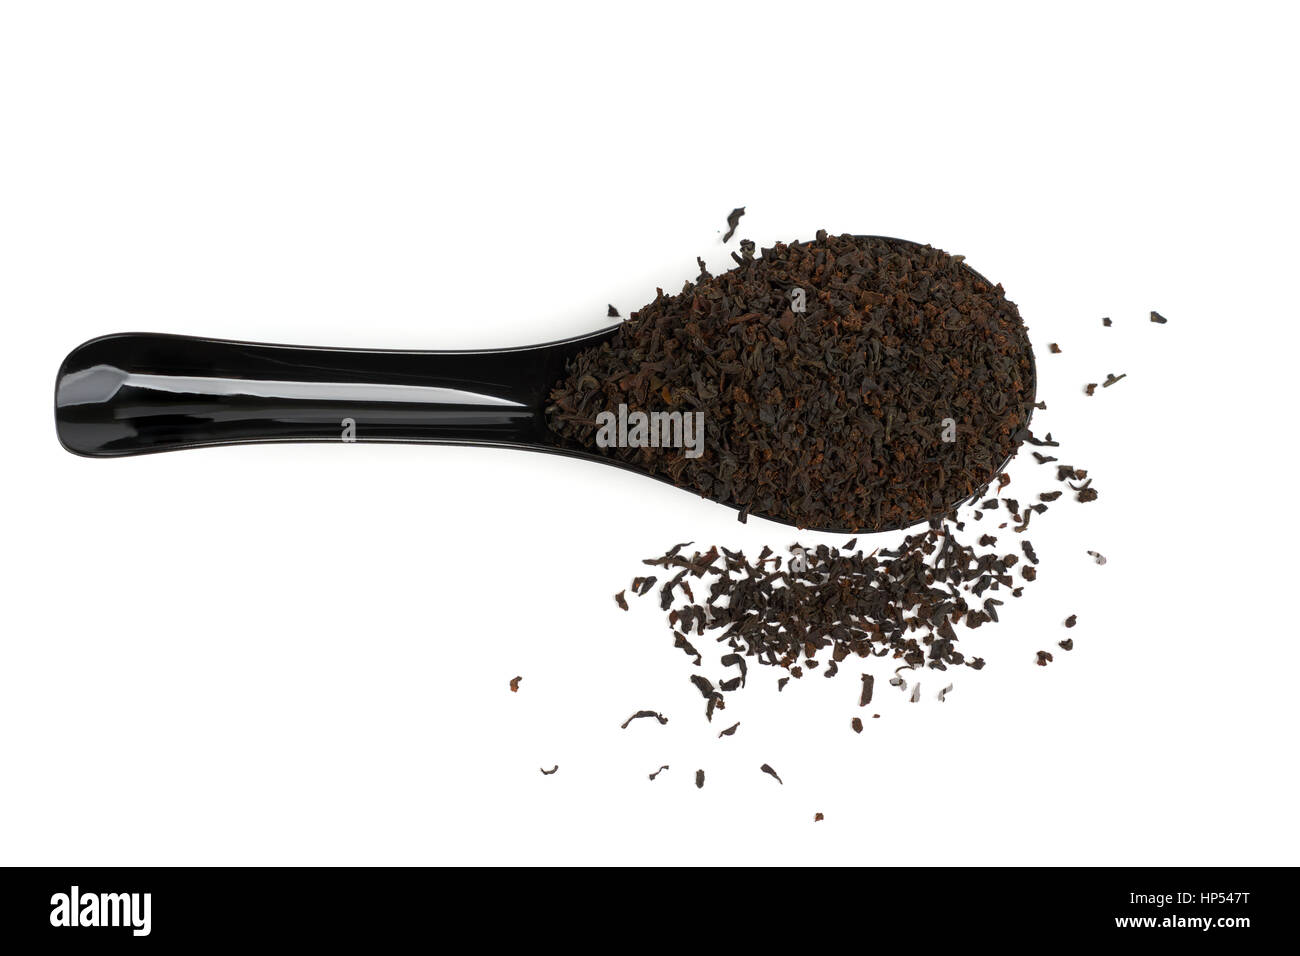 Black plastic spoon full of black tea isolated on white. Upper view. - Stock Image